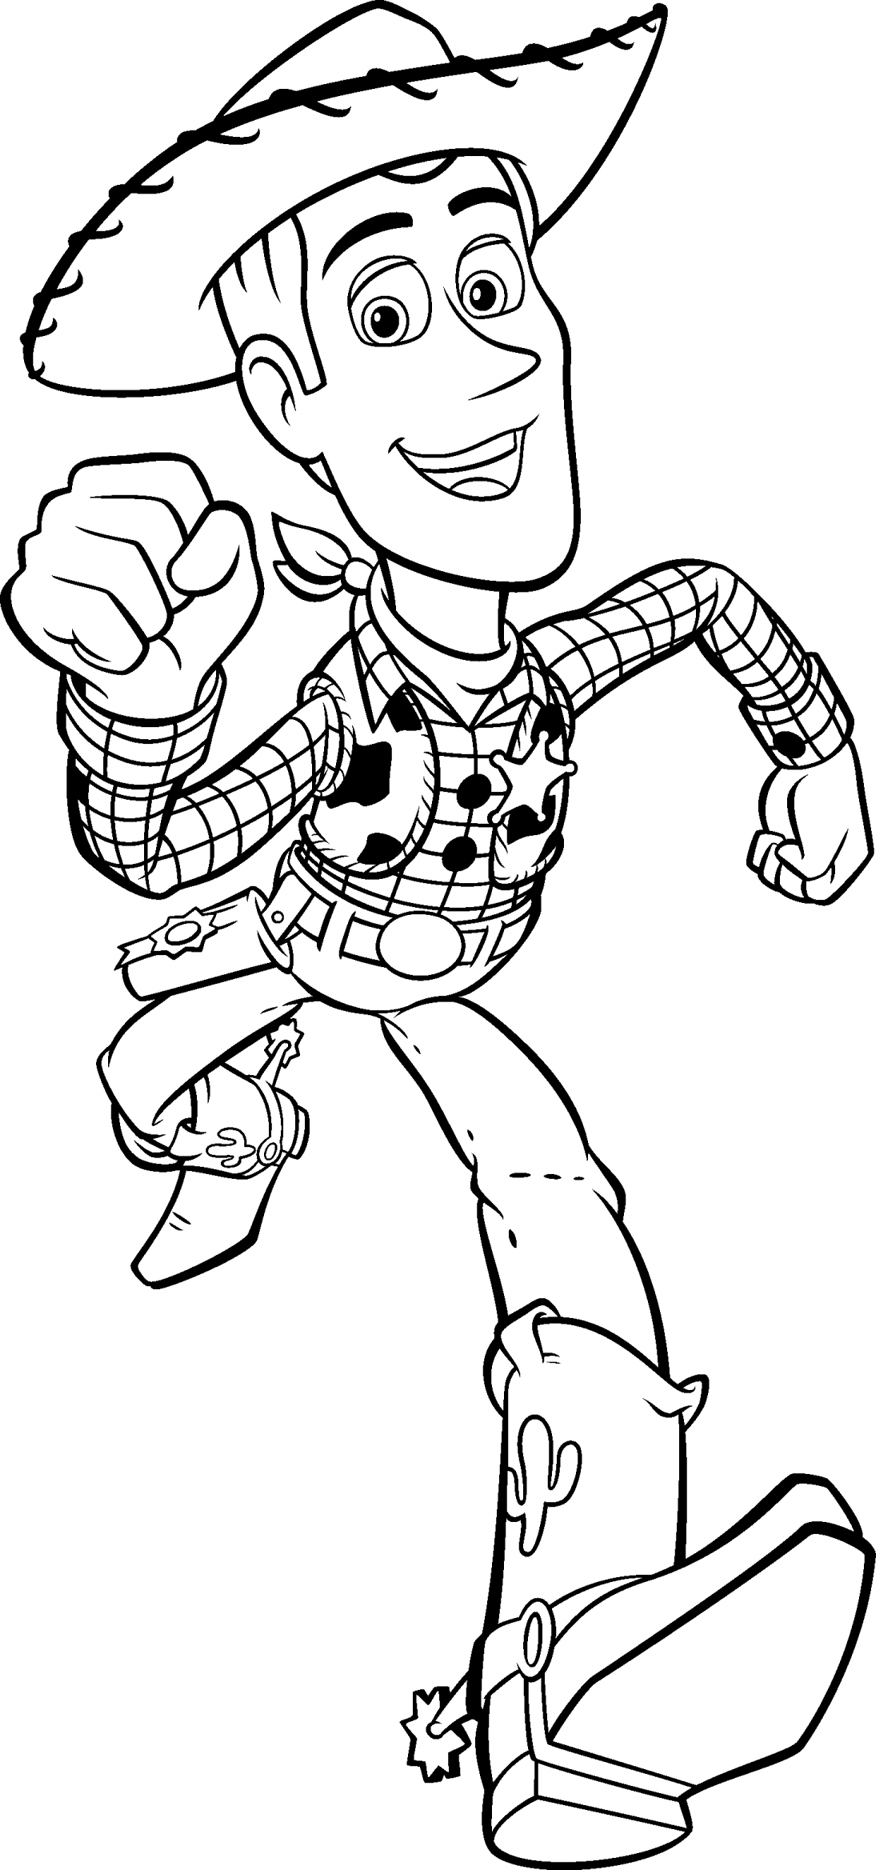 Free Coloring Pages For Toddlers Disney : Free printable toy story coloring pages for kids